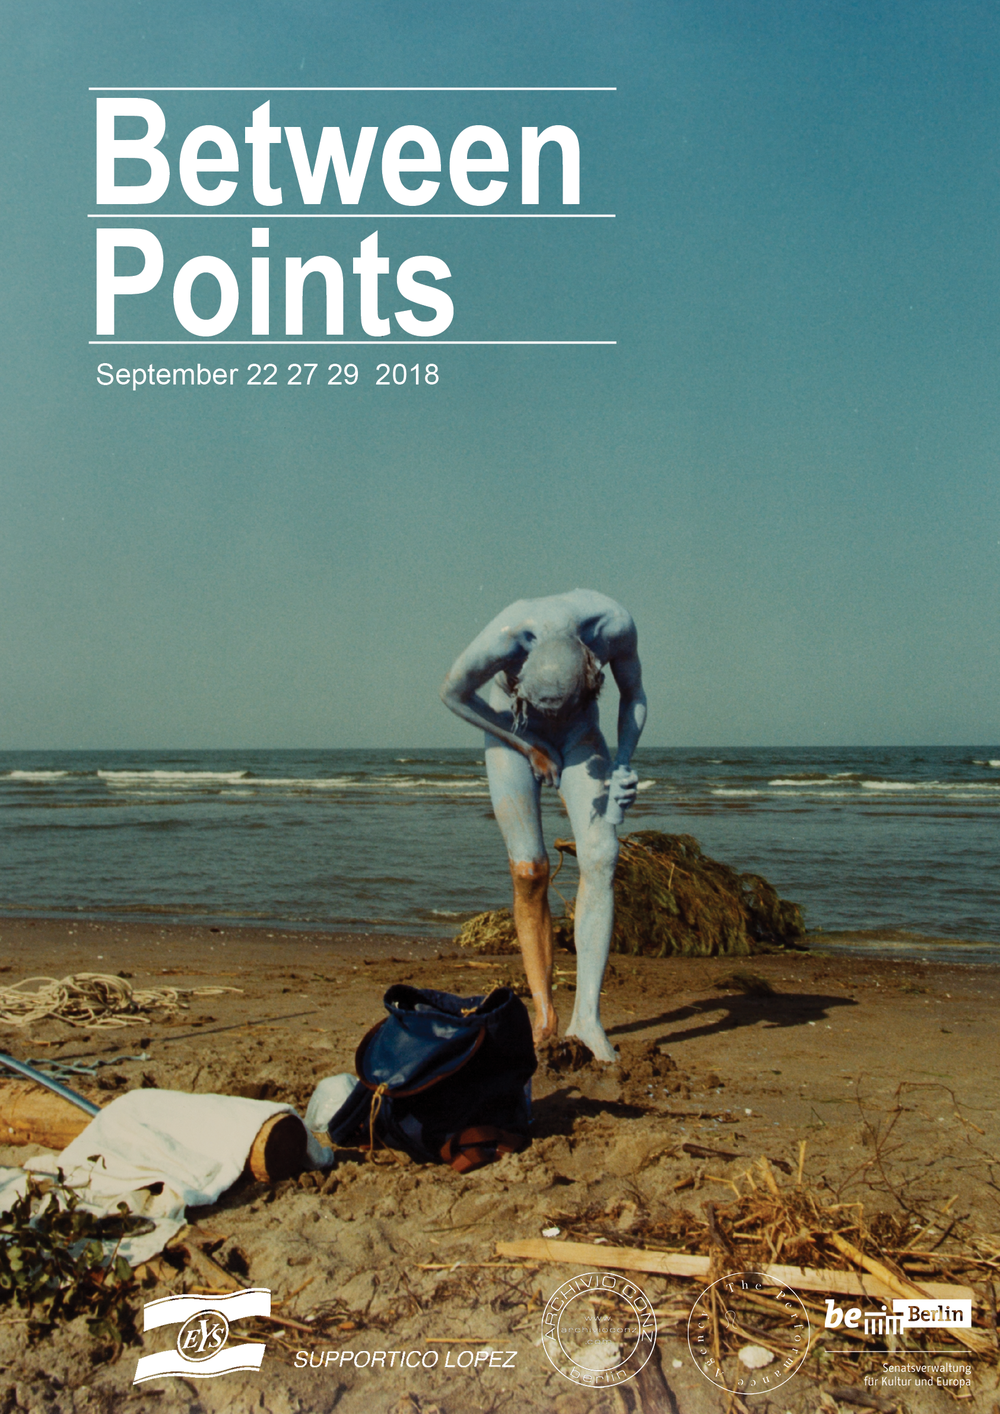 BetweenPoints_Poster_A1_Online_72dpi.png